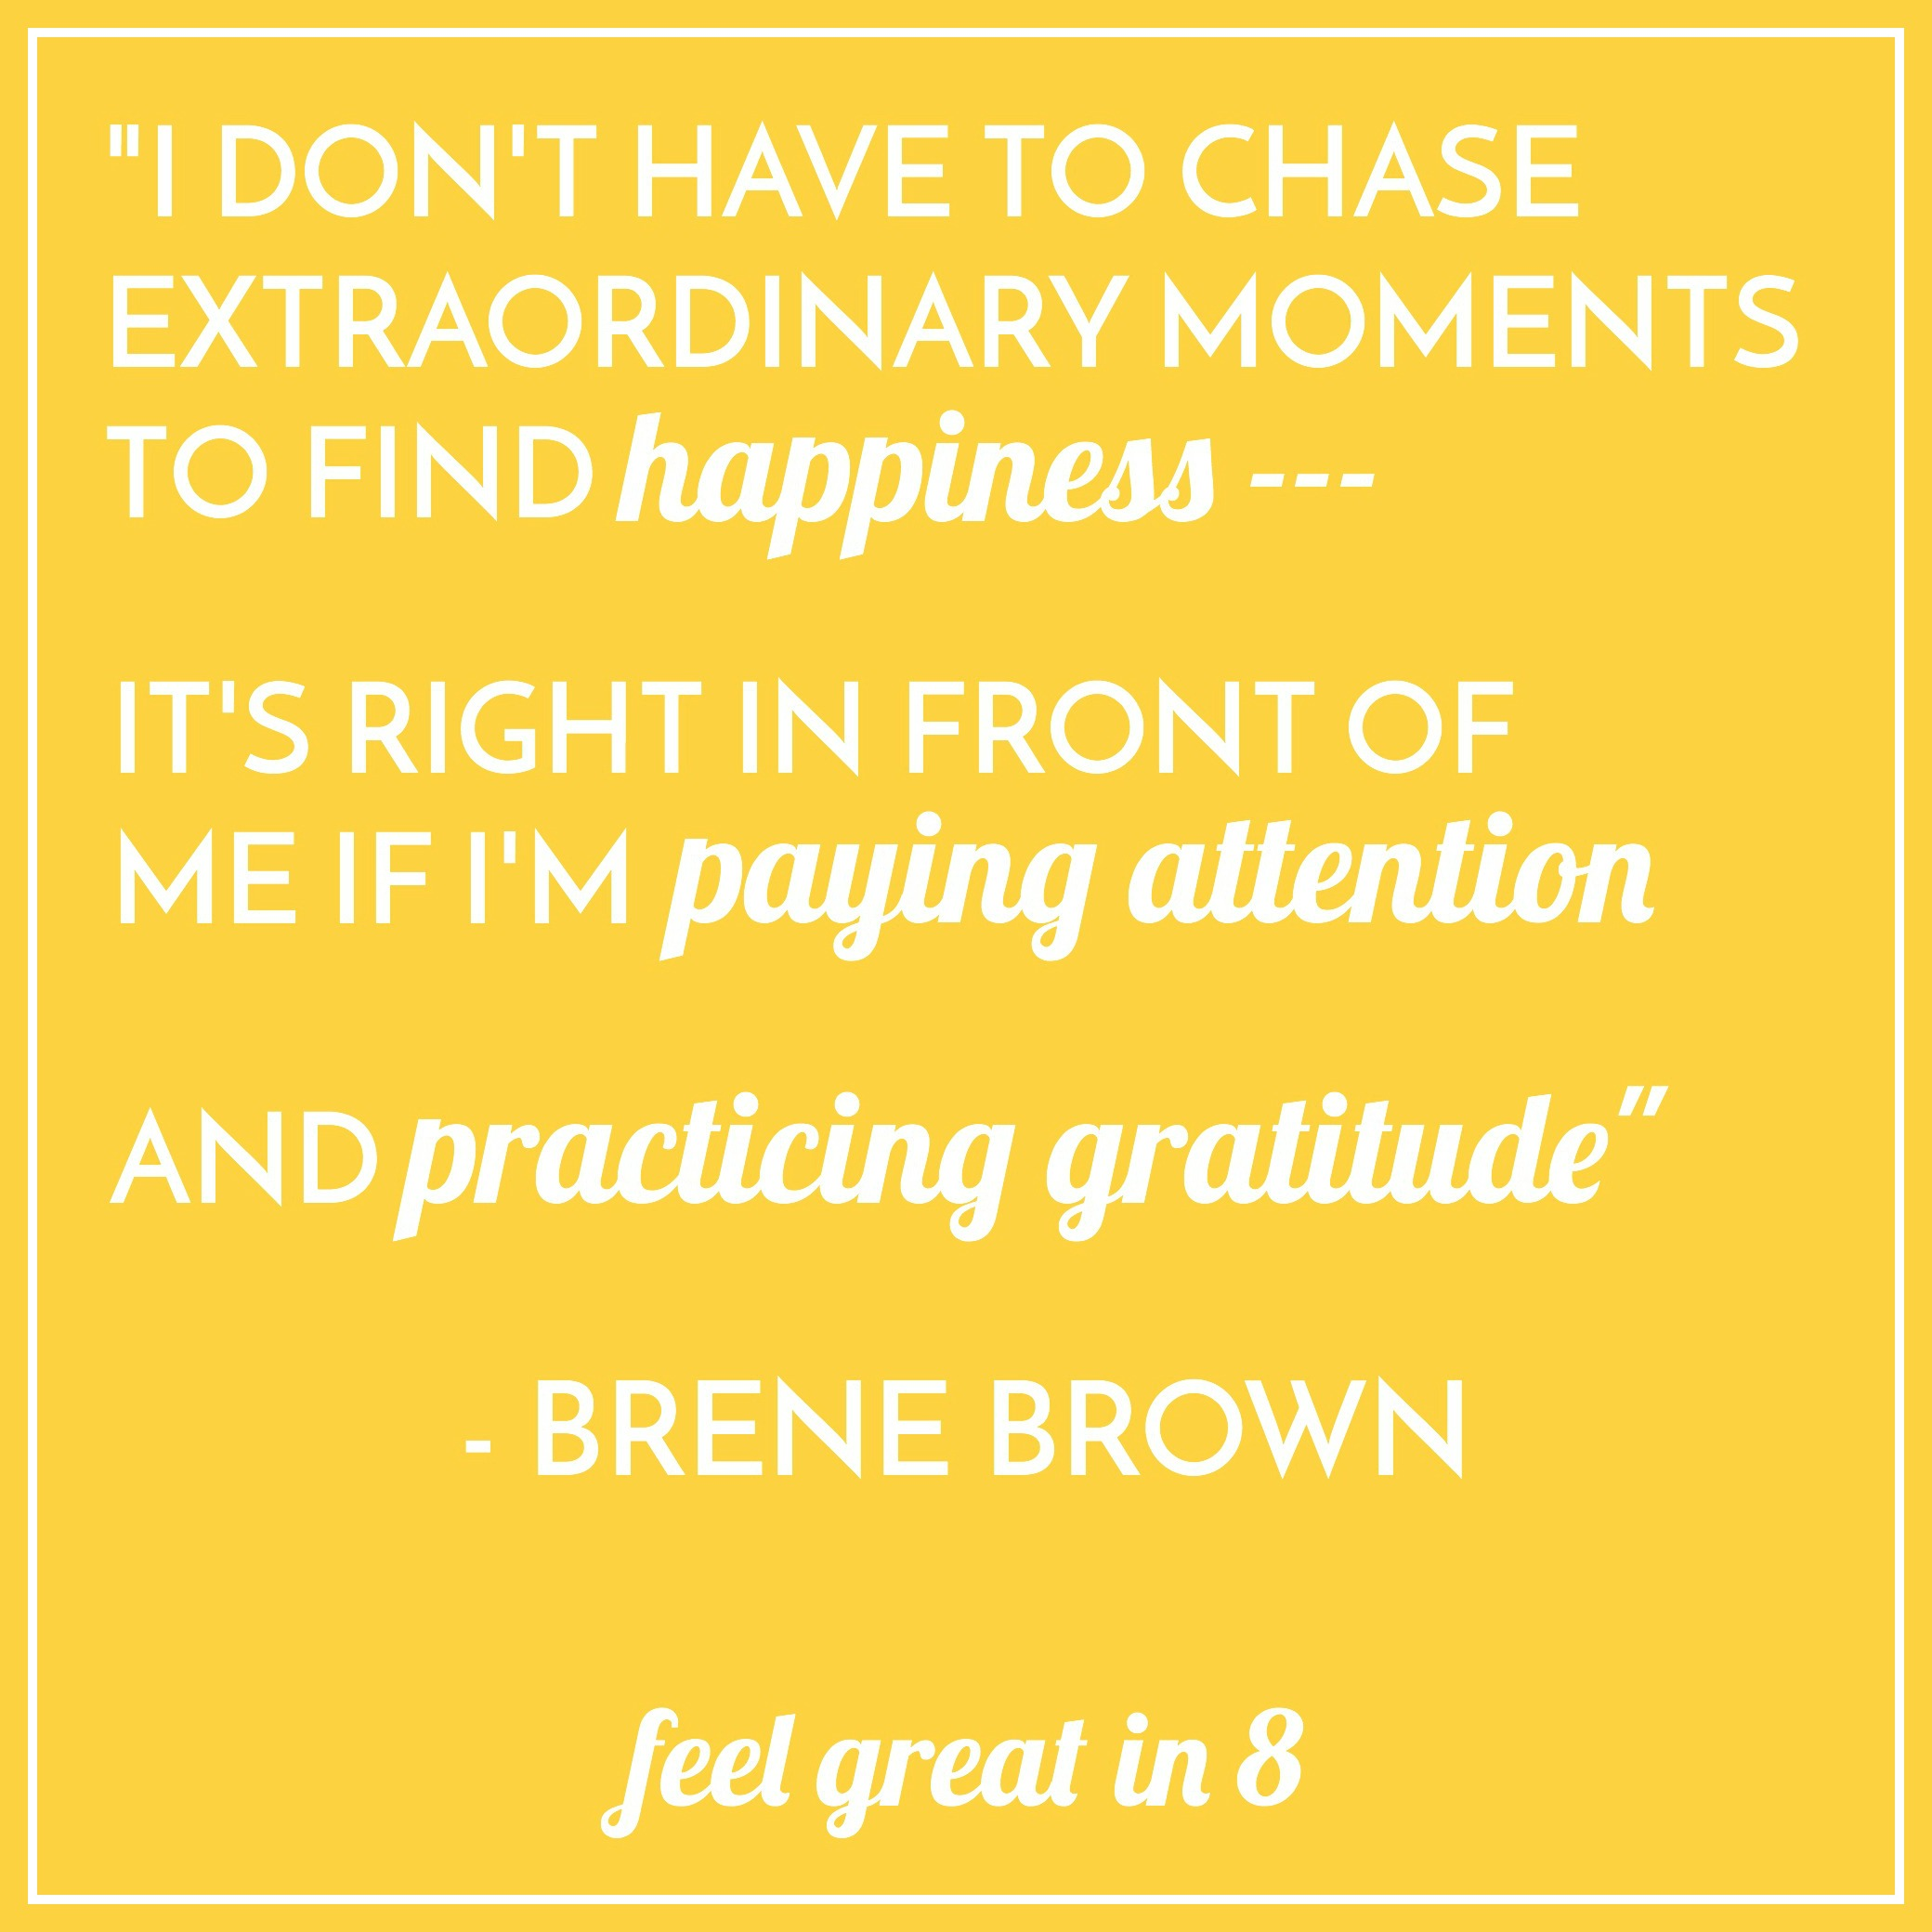 Glennon Doyle Melton Quotes 25 Quotes To Inspire & Brighten Your Day  Feel Great In 8 Blog